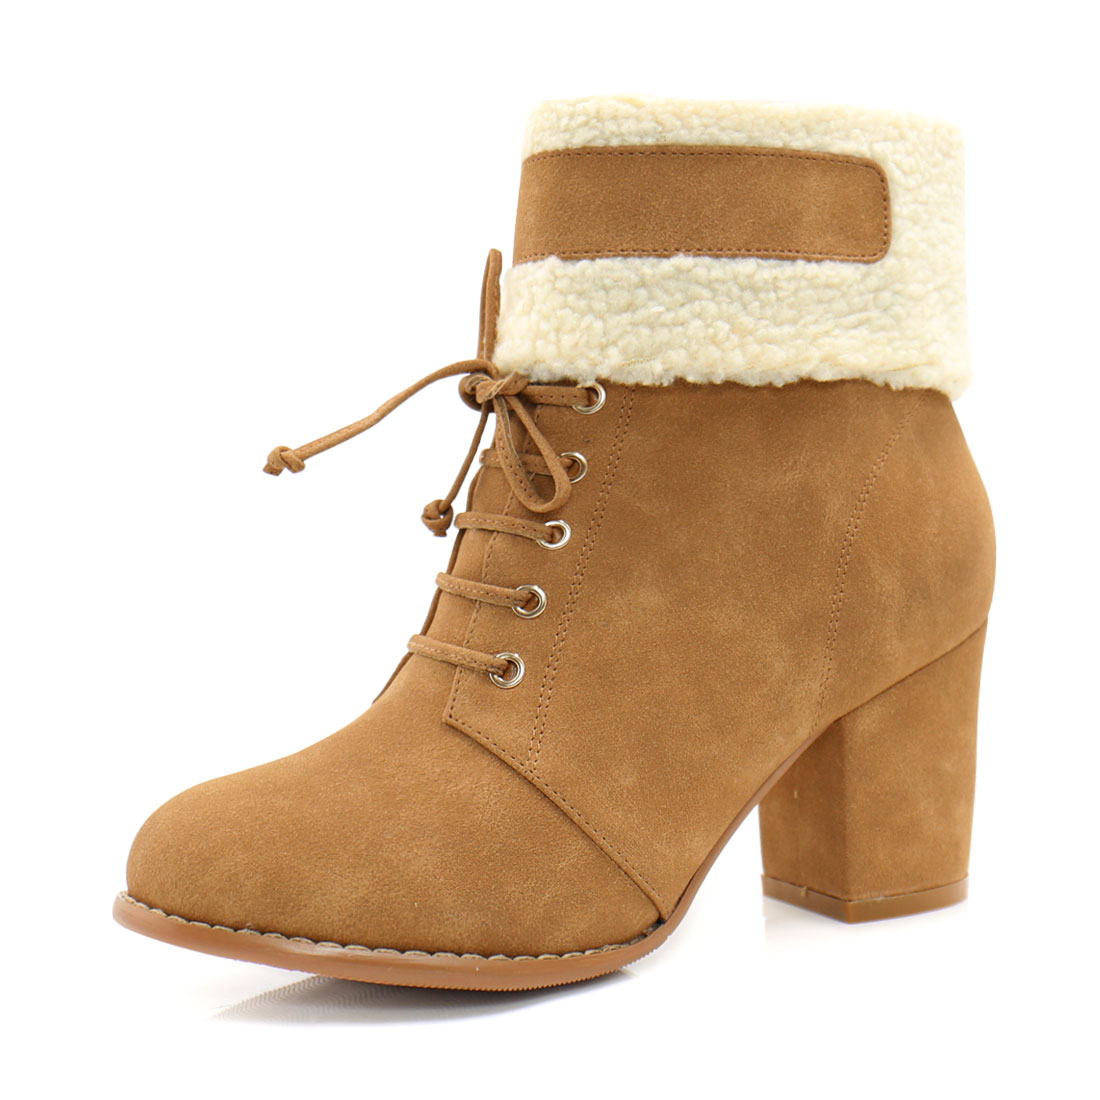 Women Plush Trim Chunky Heel Lace Up Decor Ankle Boots Camel US 7